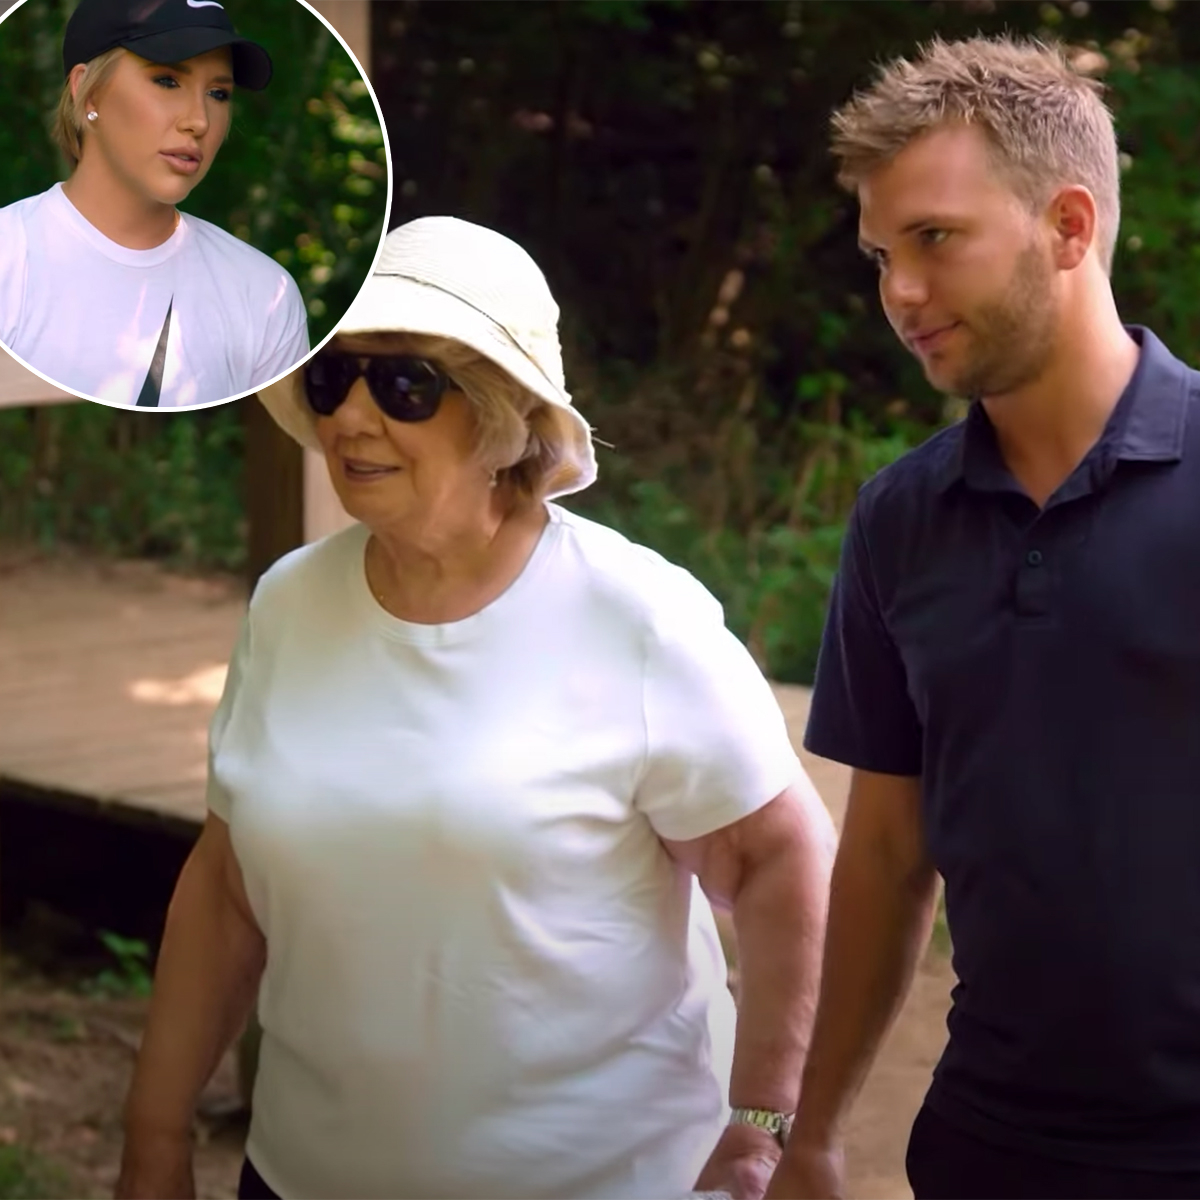 Chrisley Knows Best Preview: Nanny Faye's Hiking Trip With Savannah & Chase Does Not Go Well